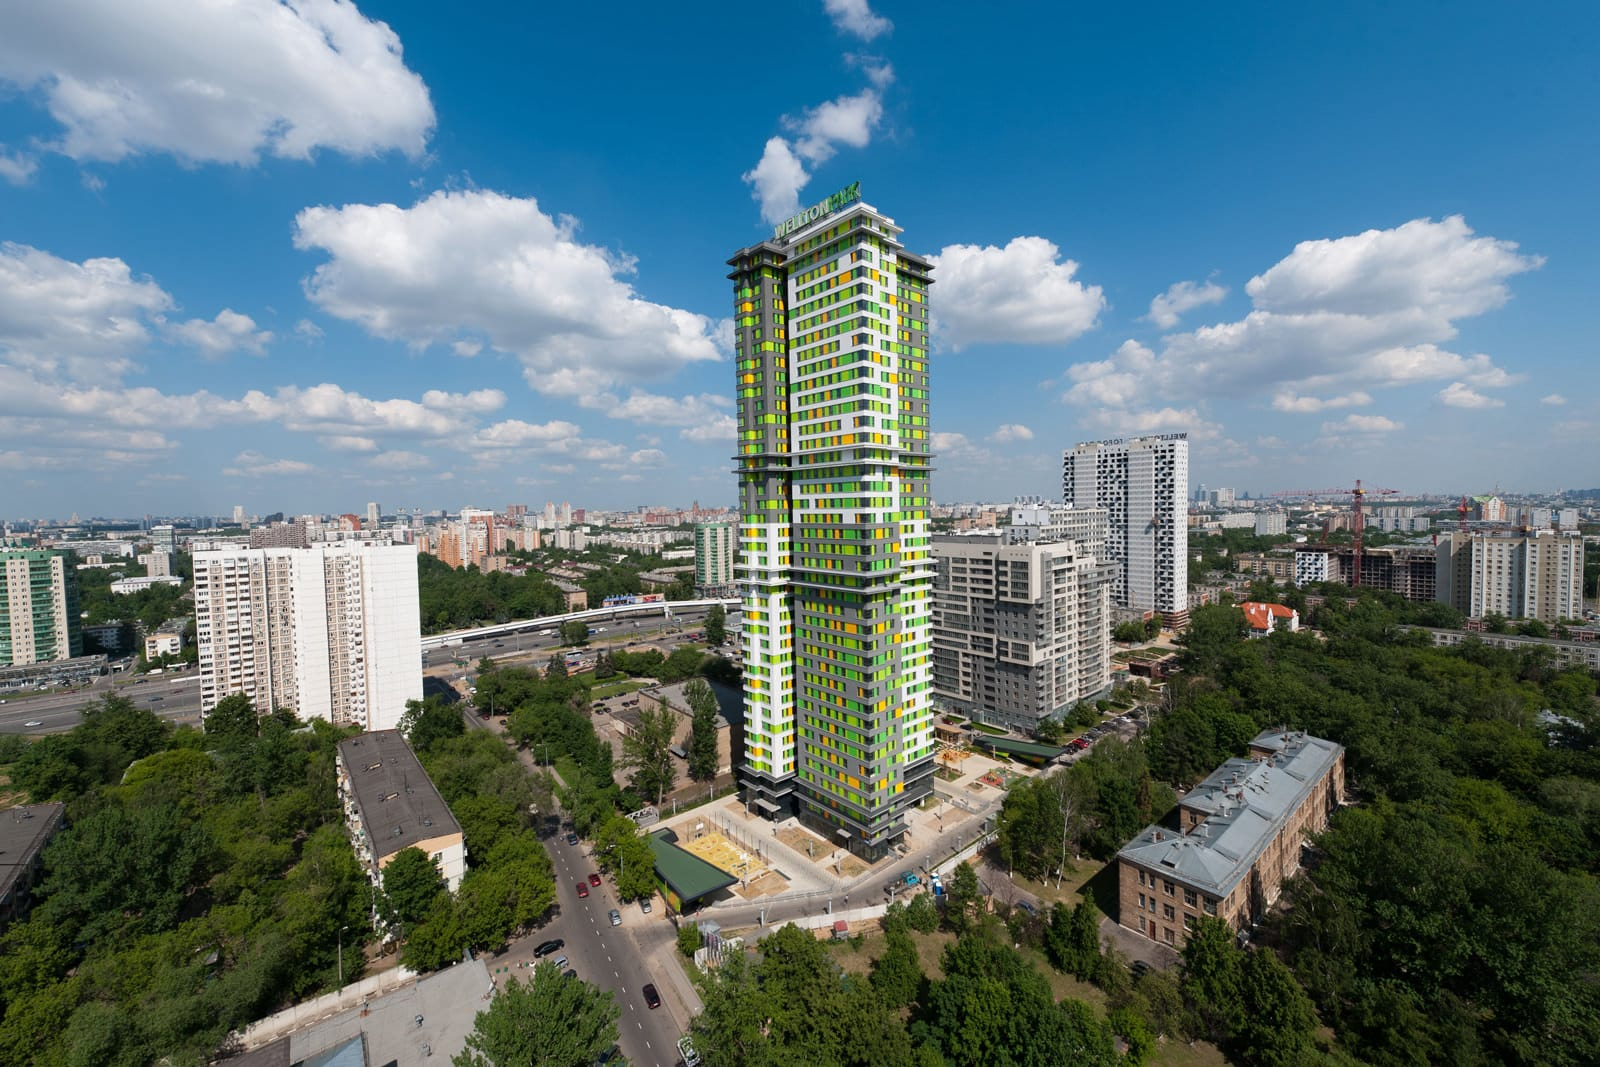 Высотный жилой дом в Москве от 4A Architekten, HQ architecture, HQarch, HQ arch, high quality architecture